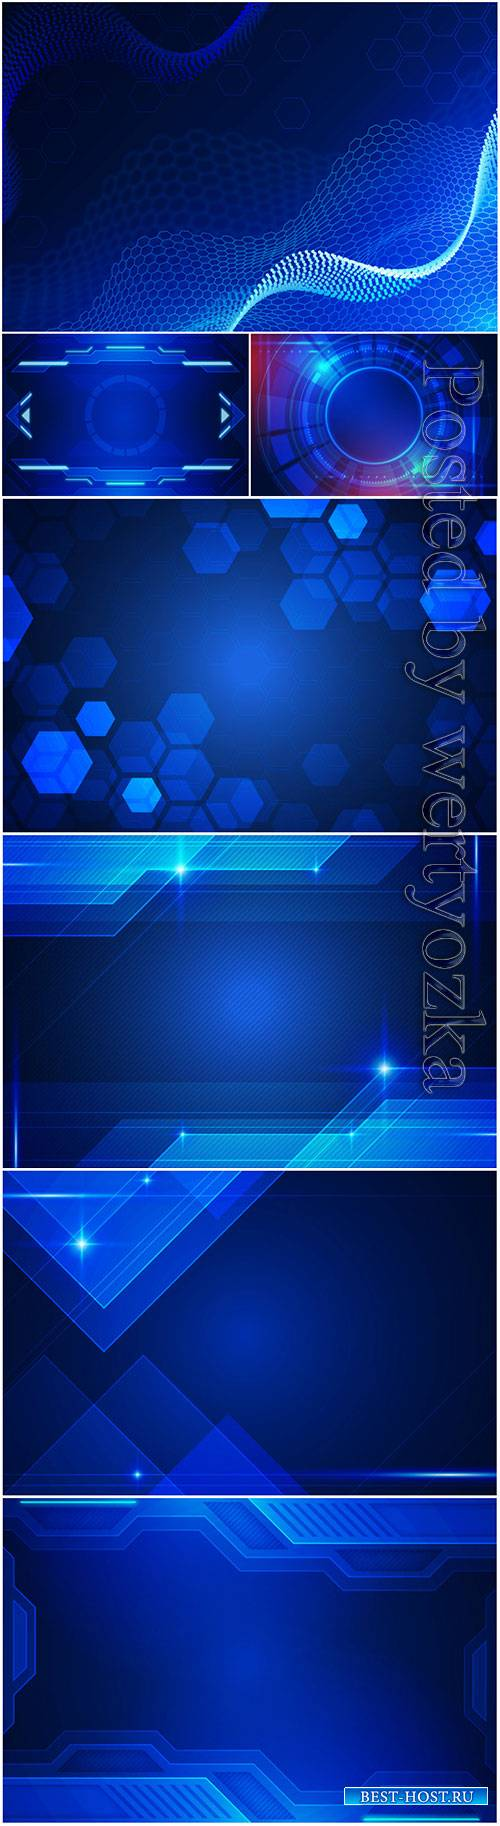 Modernistic tech vector background